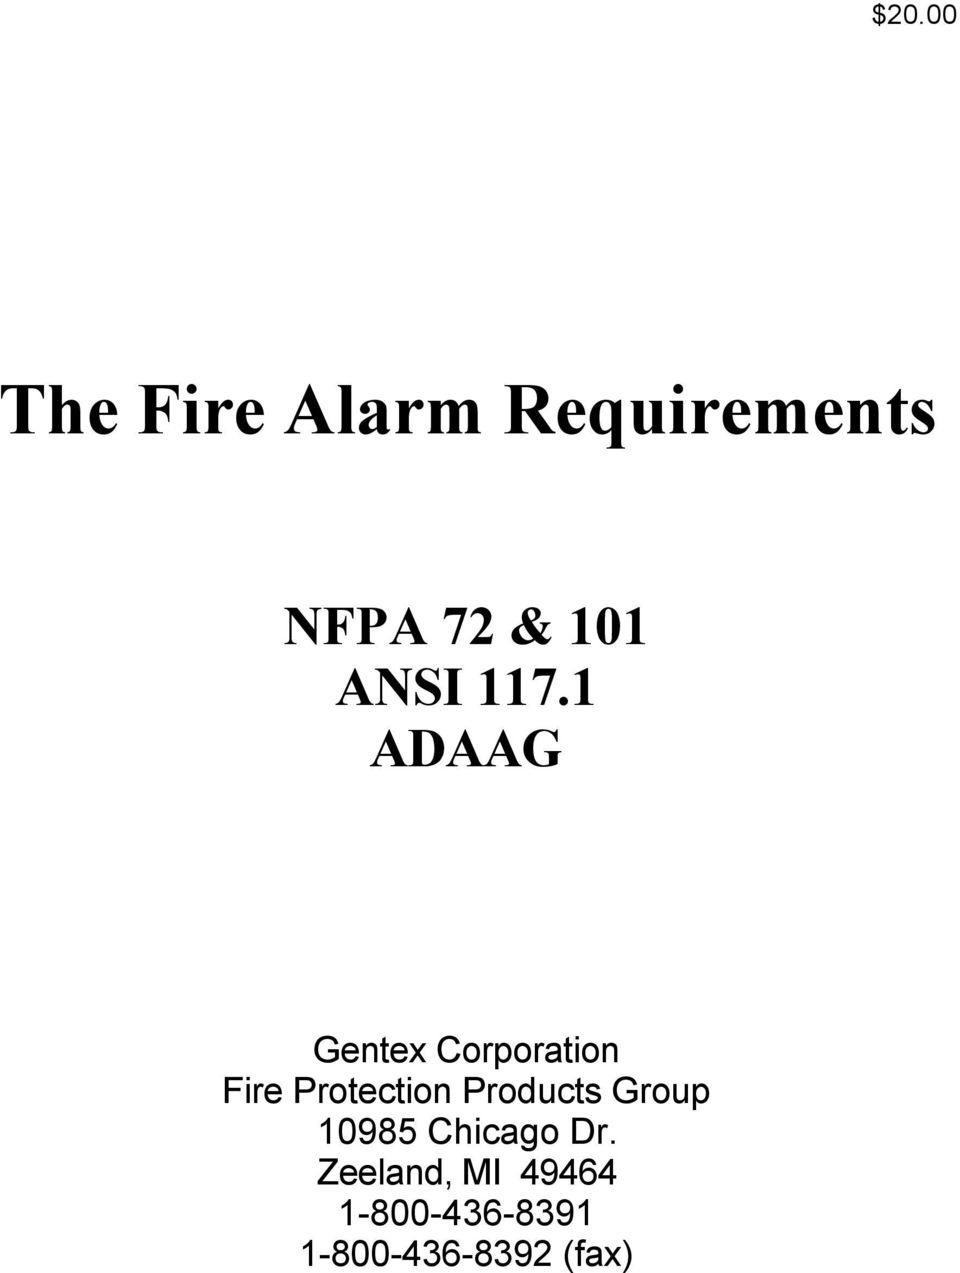 The Fire Alarm Requirements - PDF